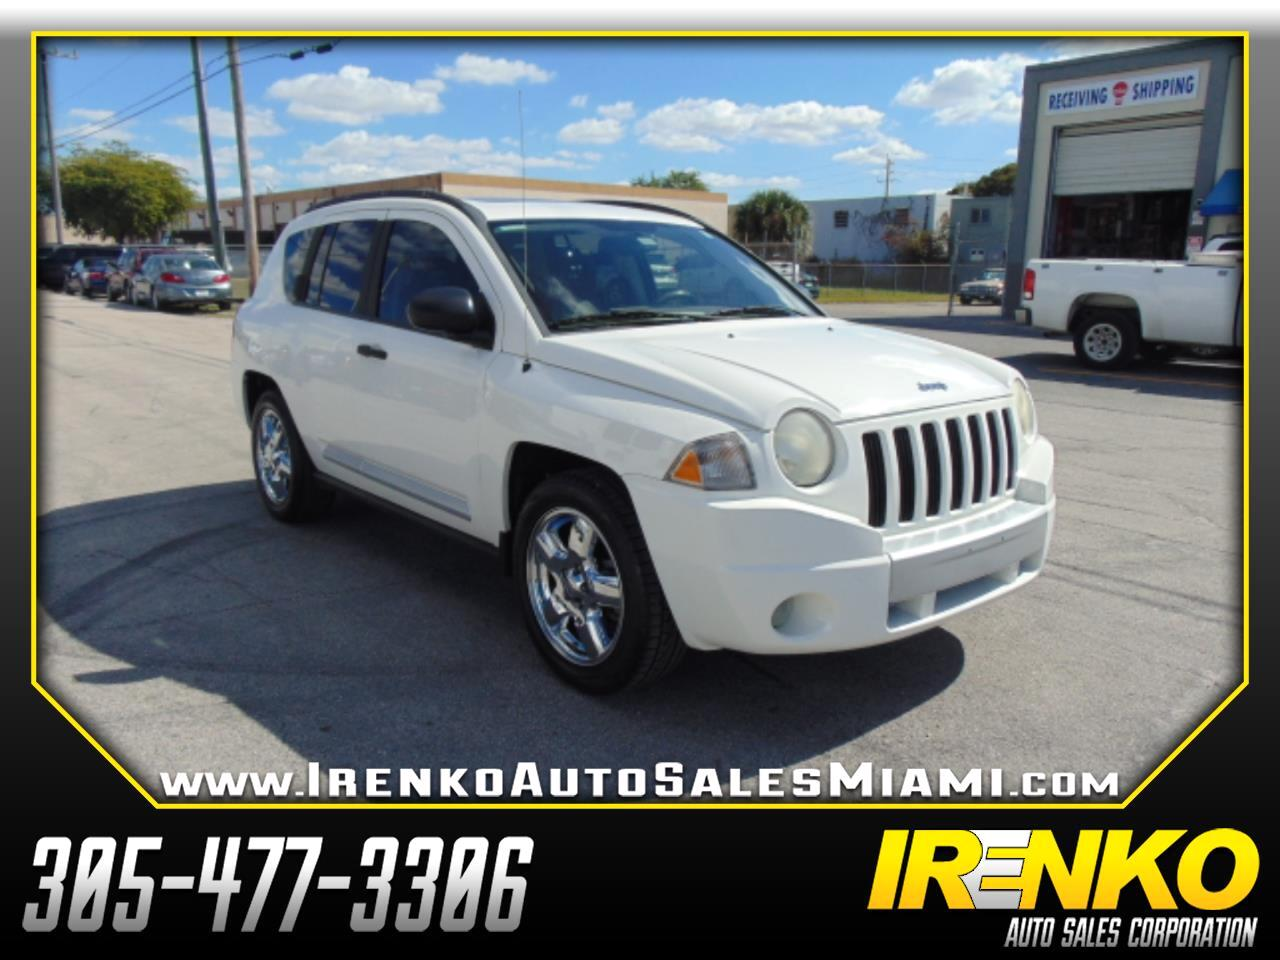 2007 Jeep Compass 2WD 4dr Limited